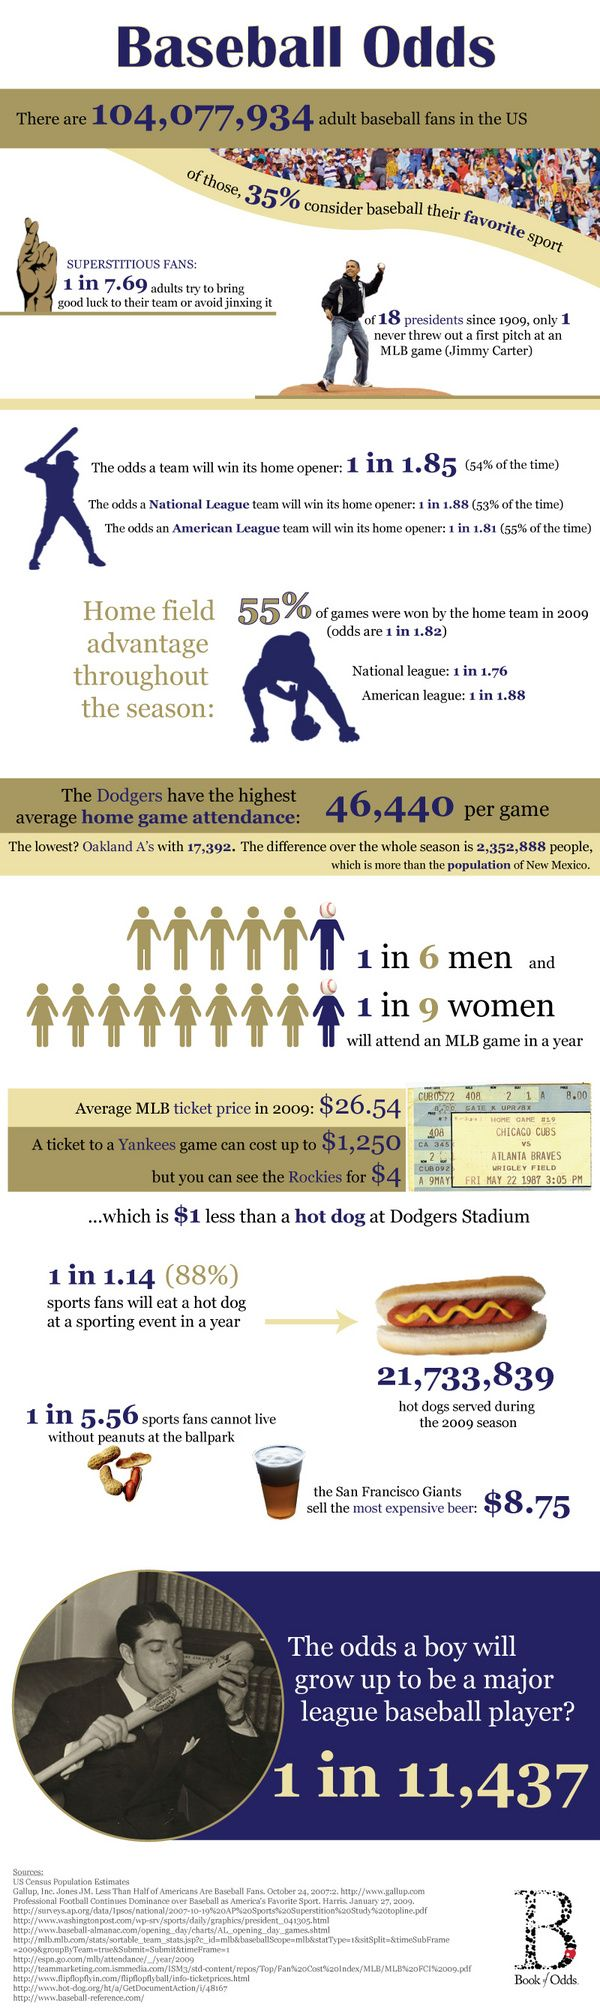 This infograph contains odd facts about baseball.